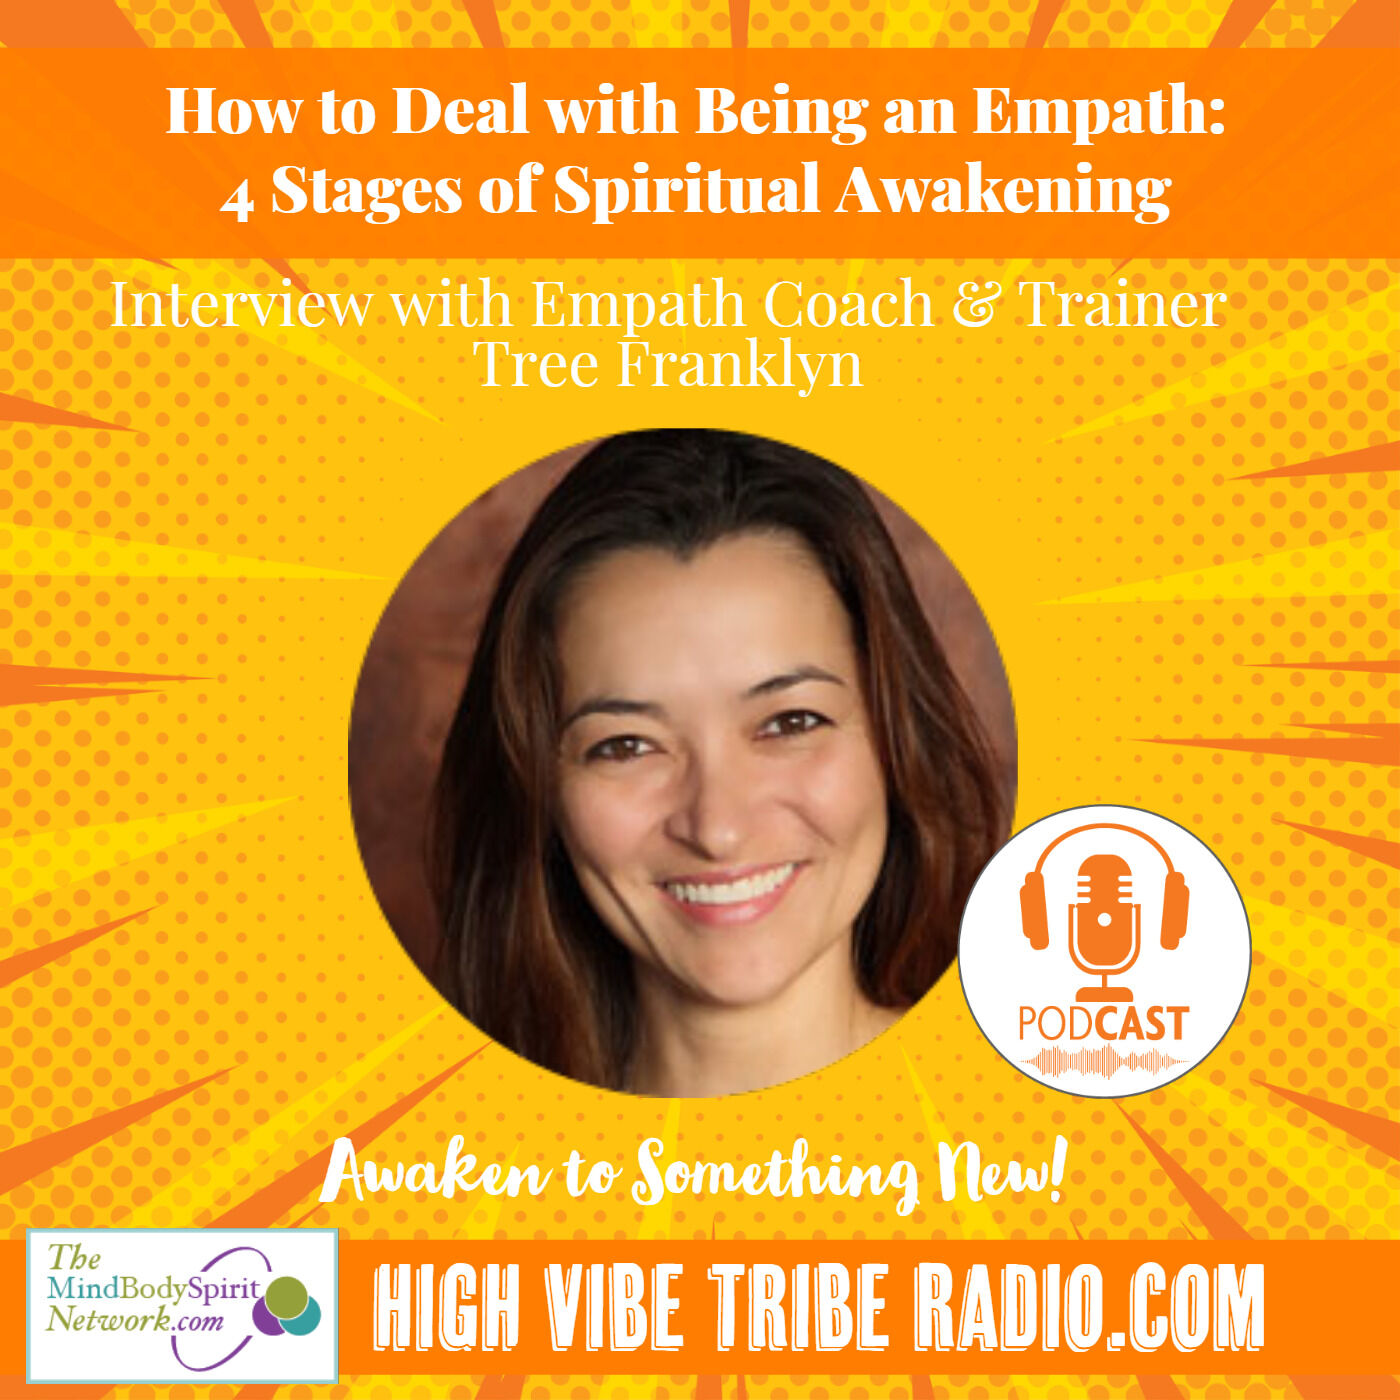 How to Deal with Being an Empath: 4 Stages of Spiritual Awakening Interview with Tree Franklyn